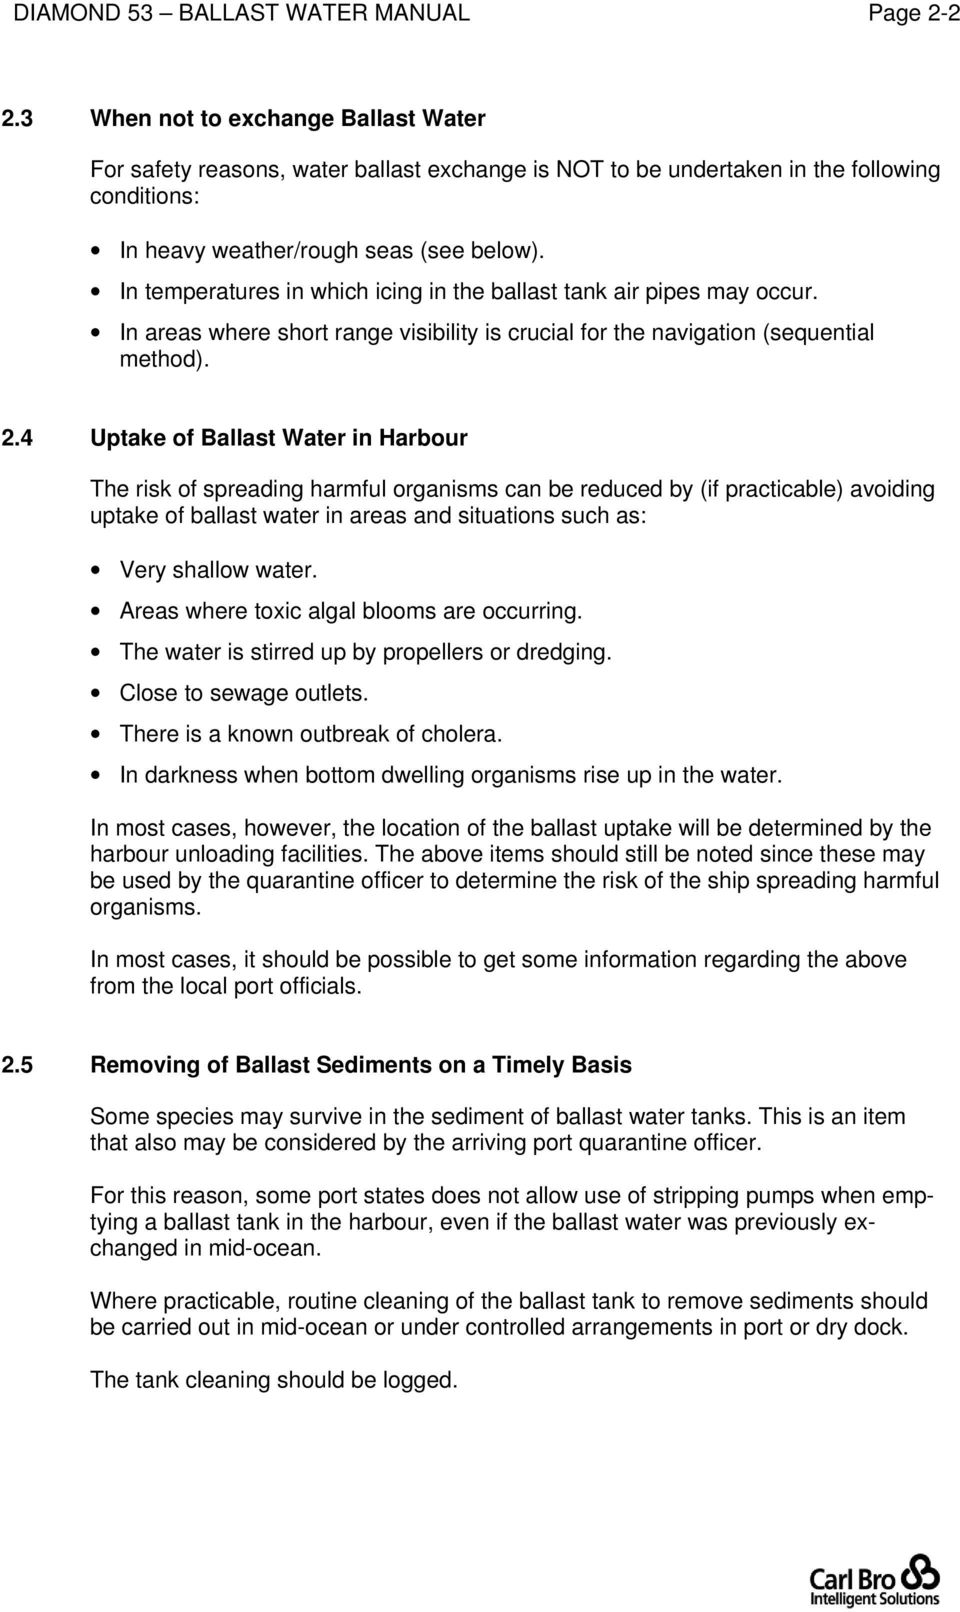 Ballast Water Management Manual Pdf T5 Wiring Q The Reef Tank In Temperatures Which Icing Air Pipes May Occur Areas